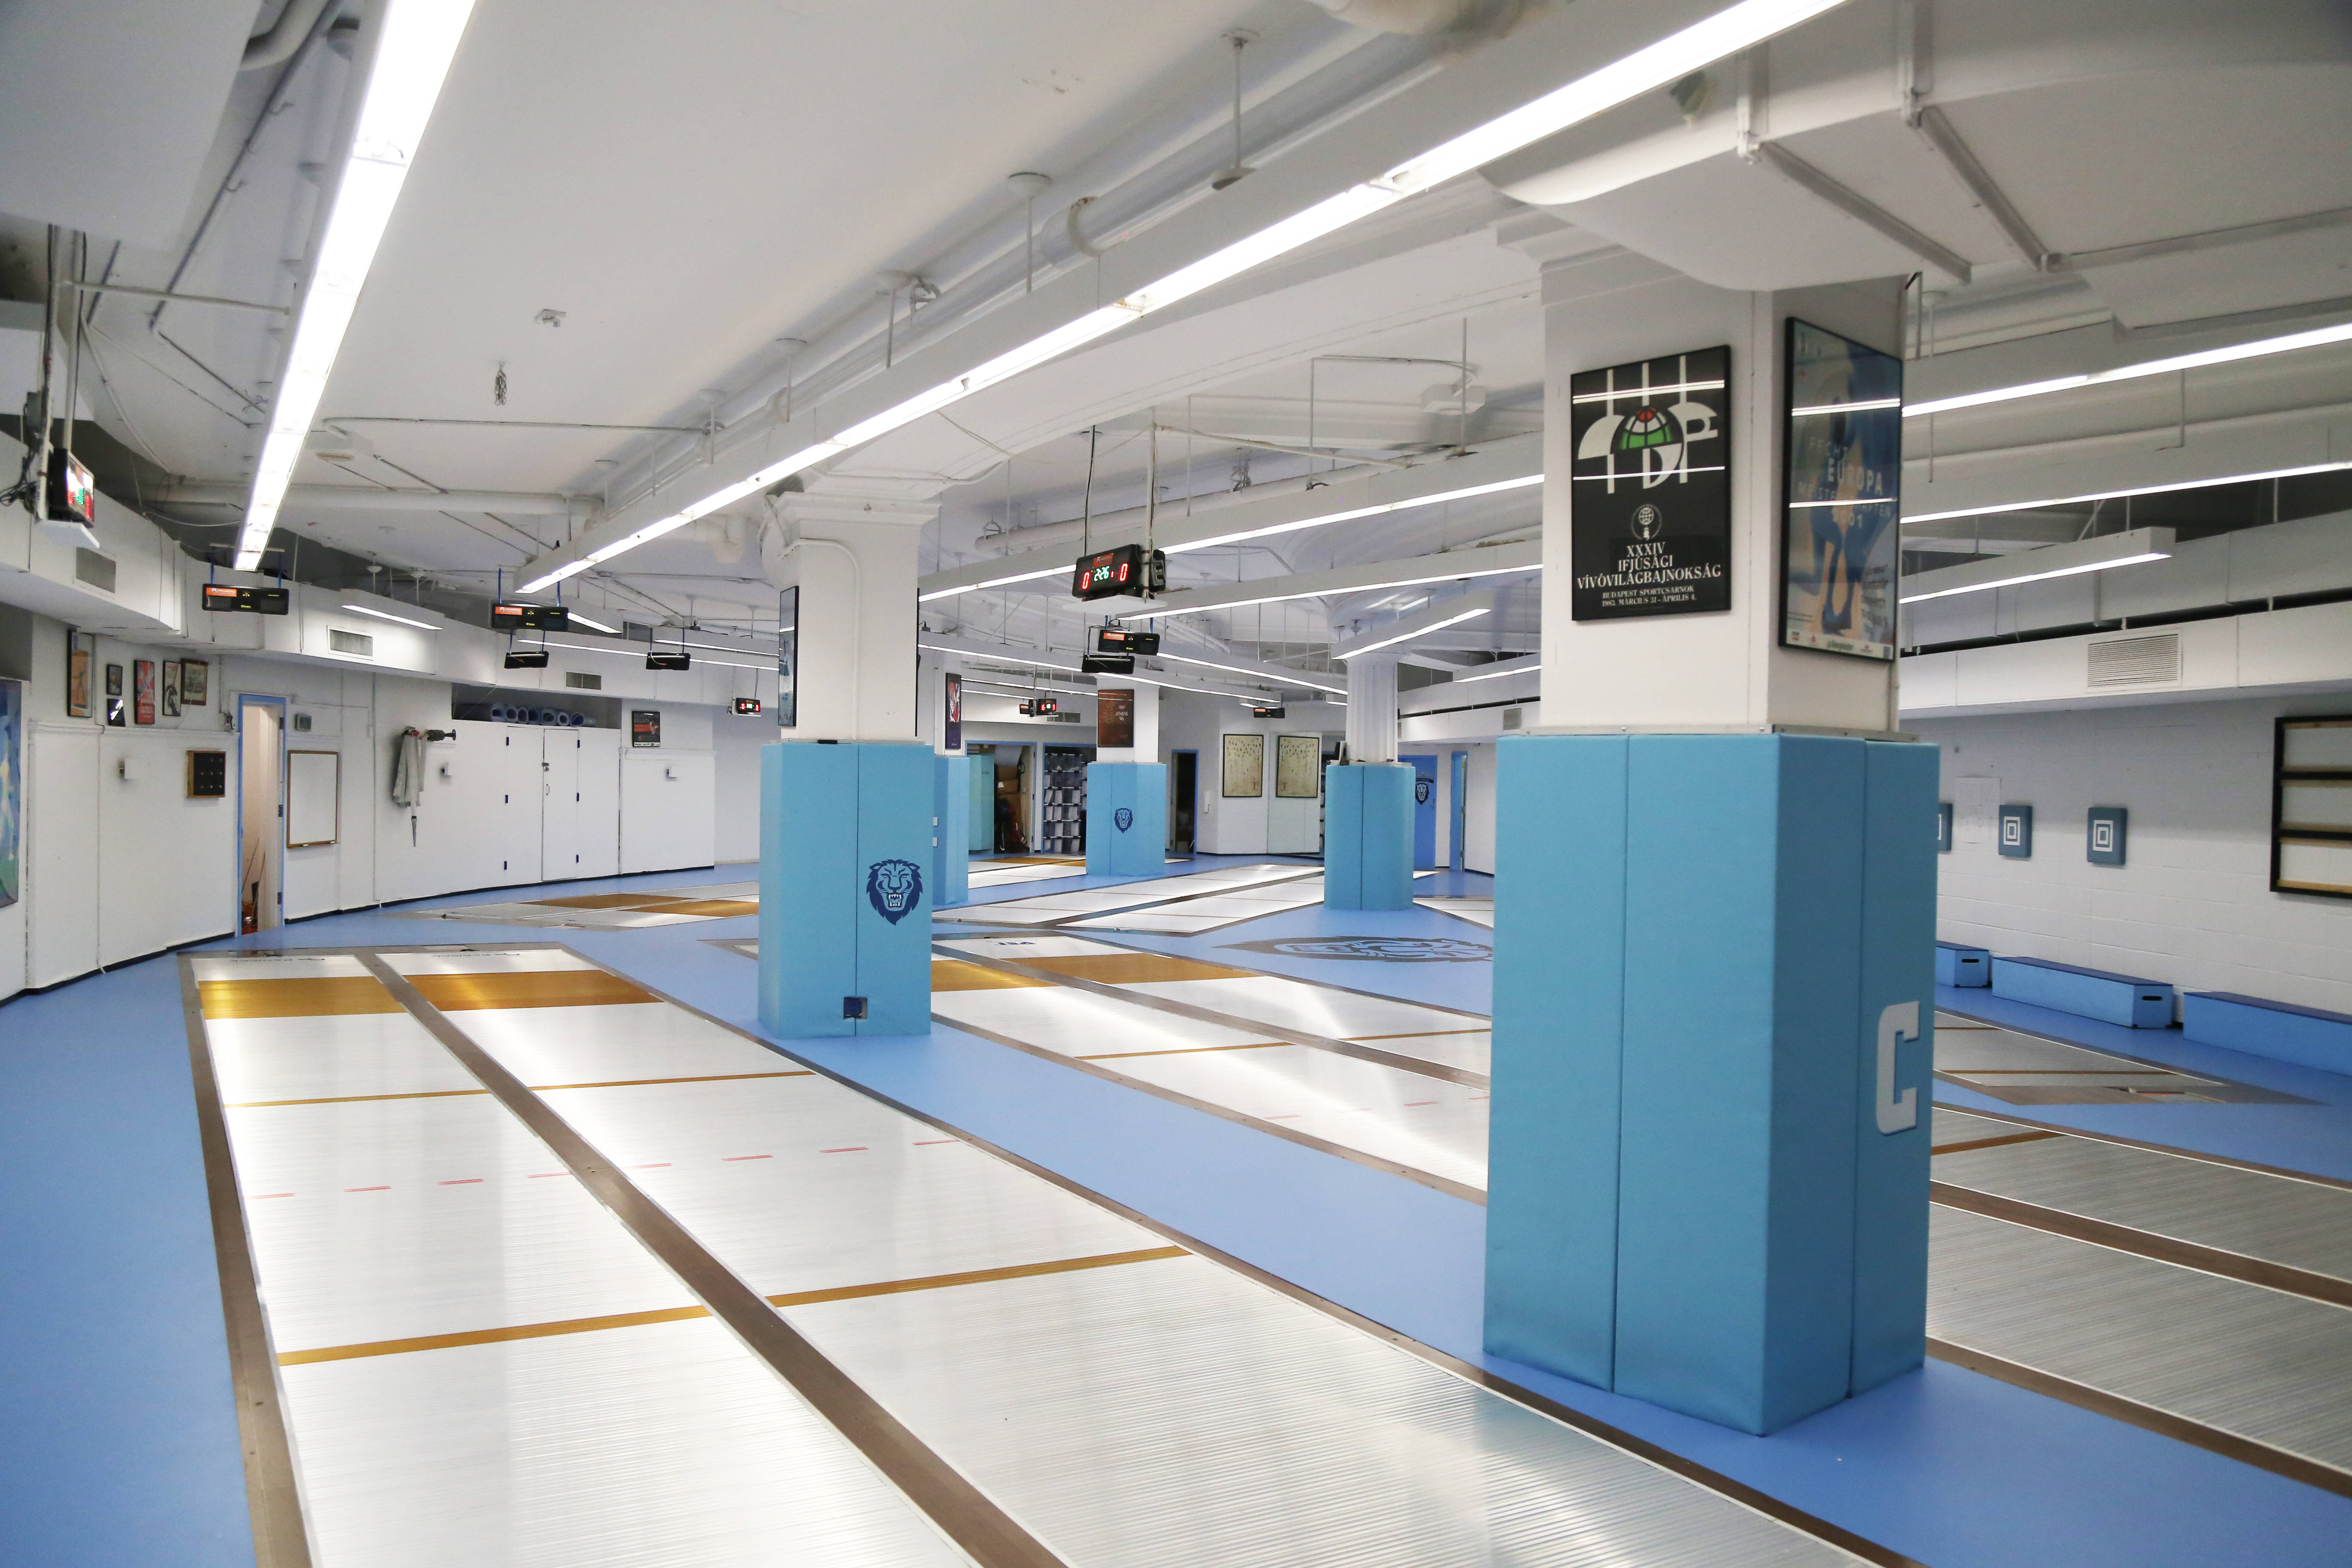 Columbia Opens Brand-New One-of-a-Kind Fencing Room